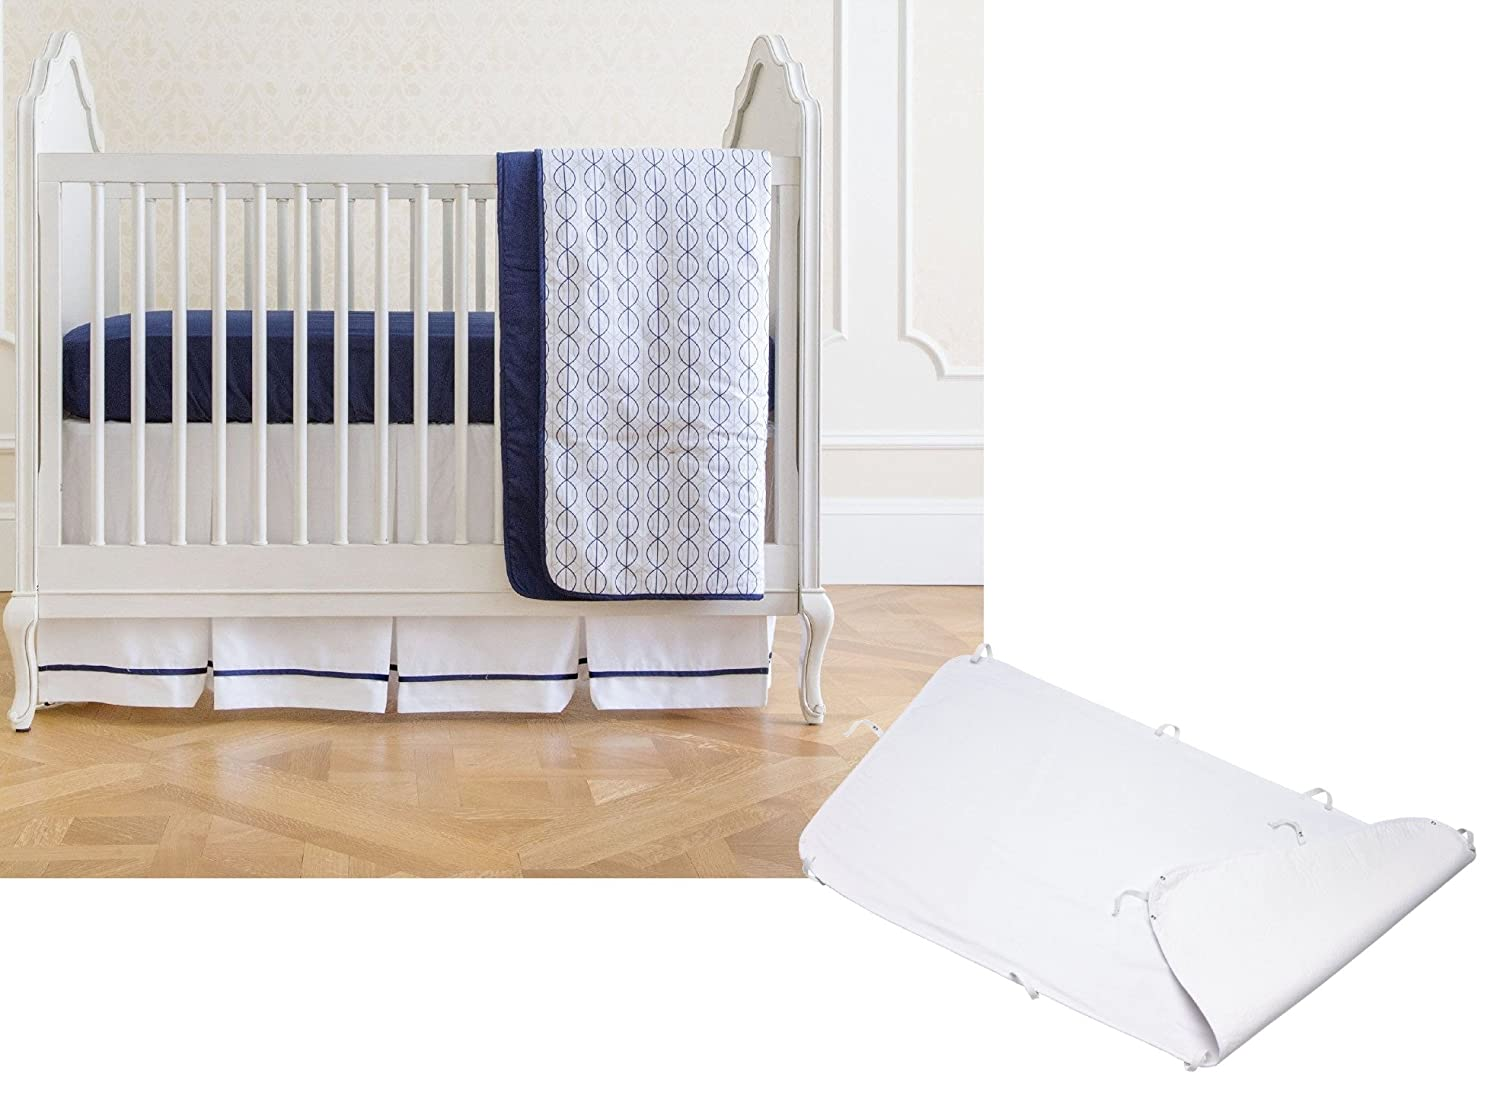 Summer Infant 4 Piece Bedding Set with Waterproof Mattress Pad Protector, Nautical Navy